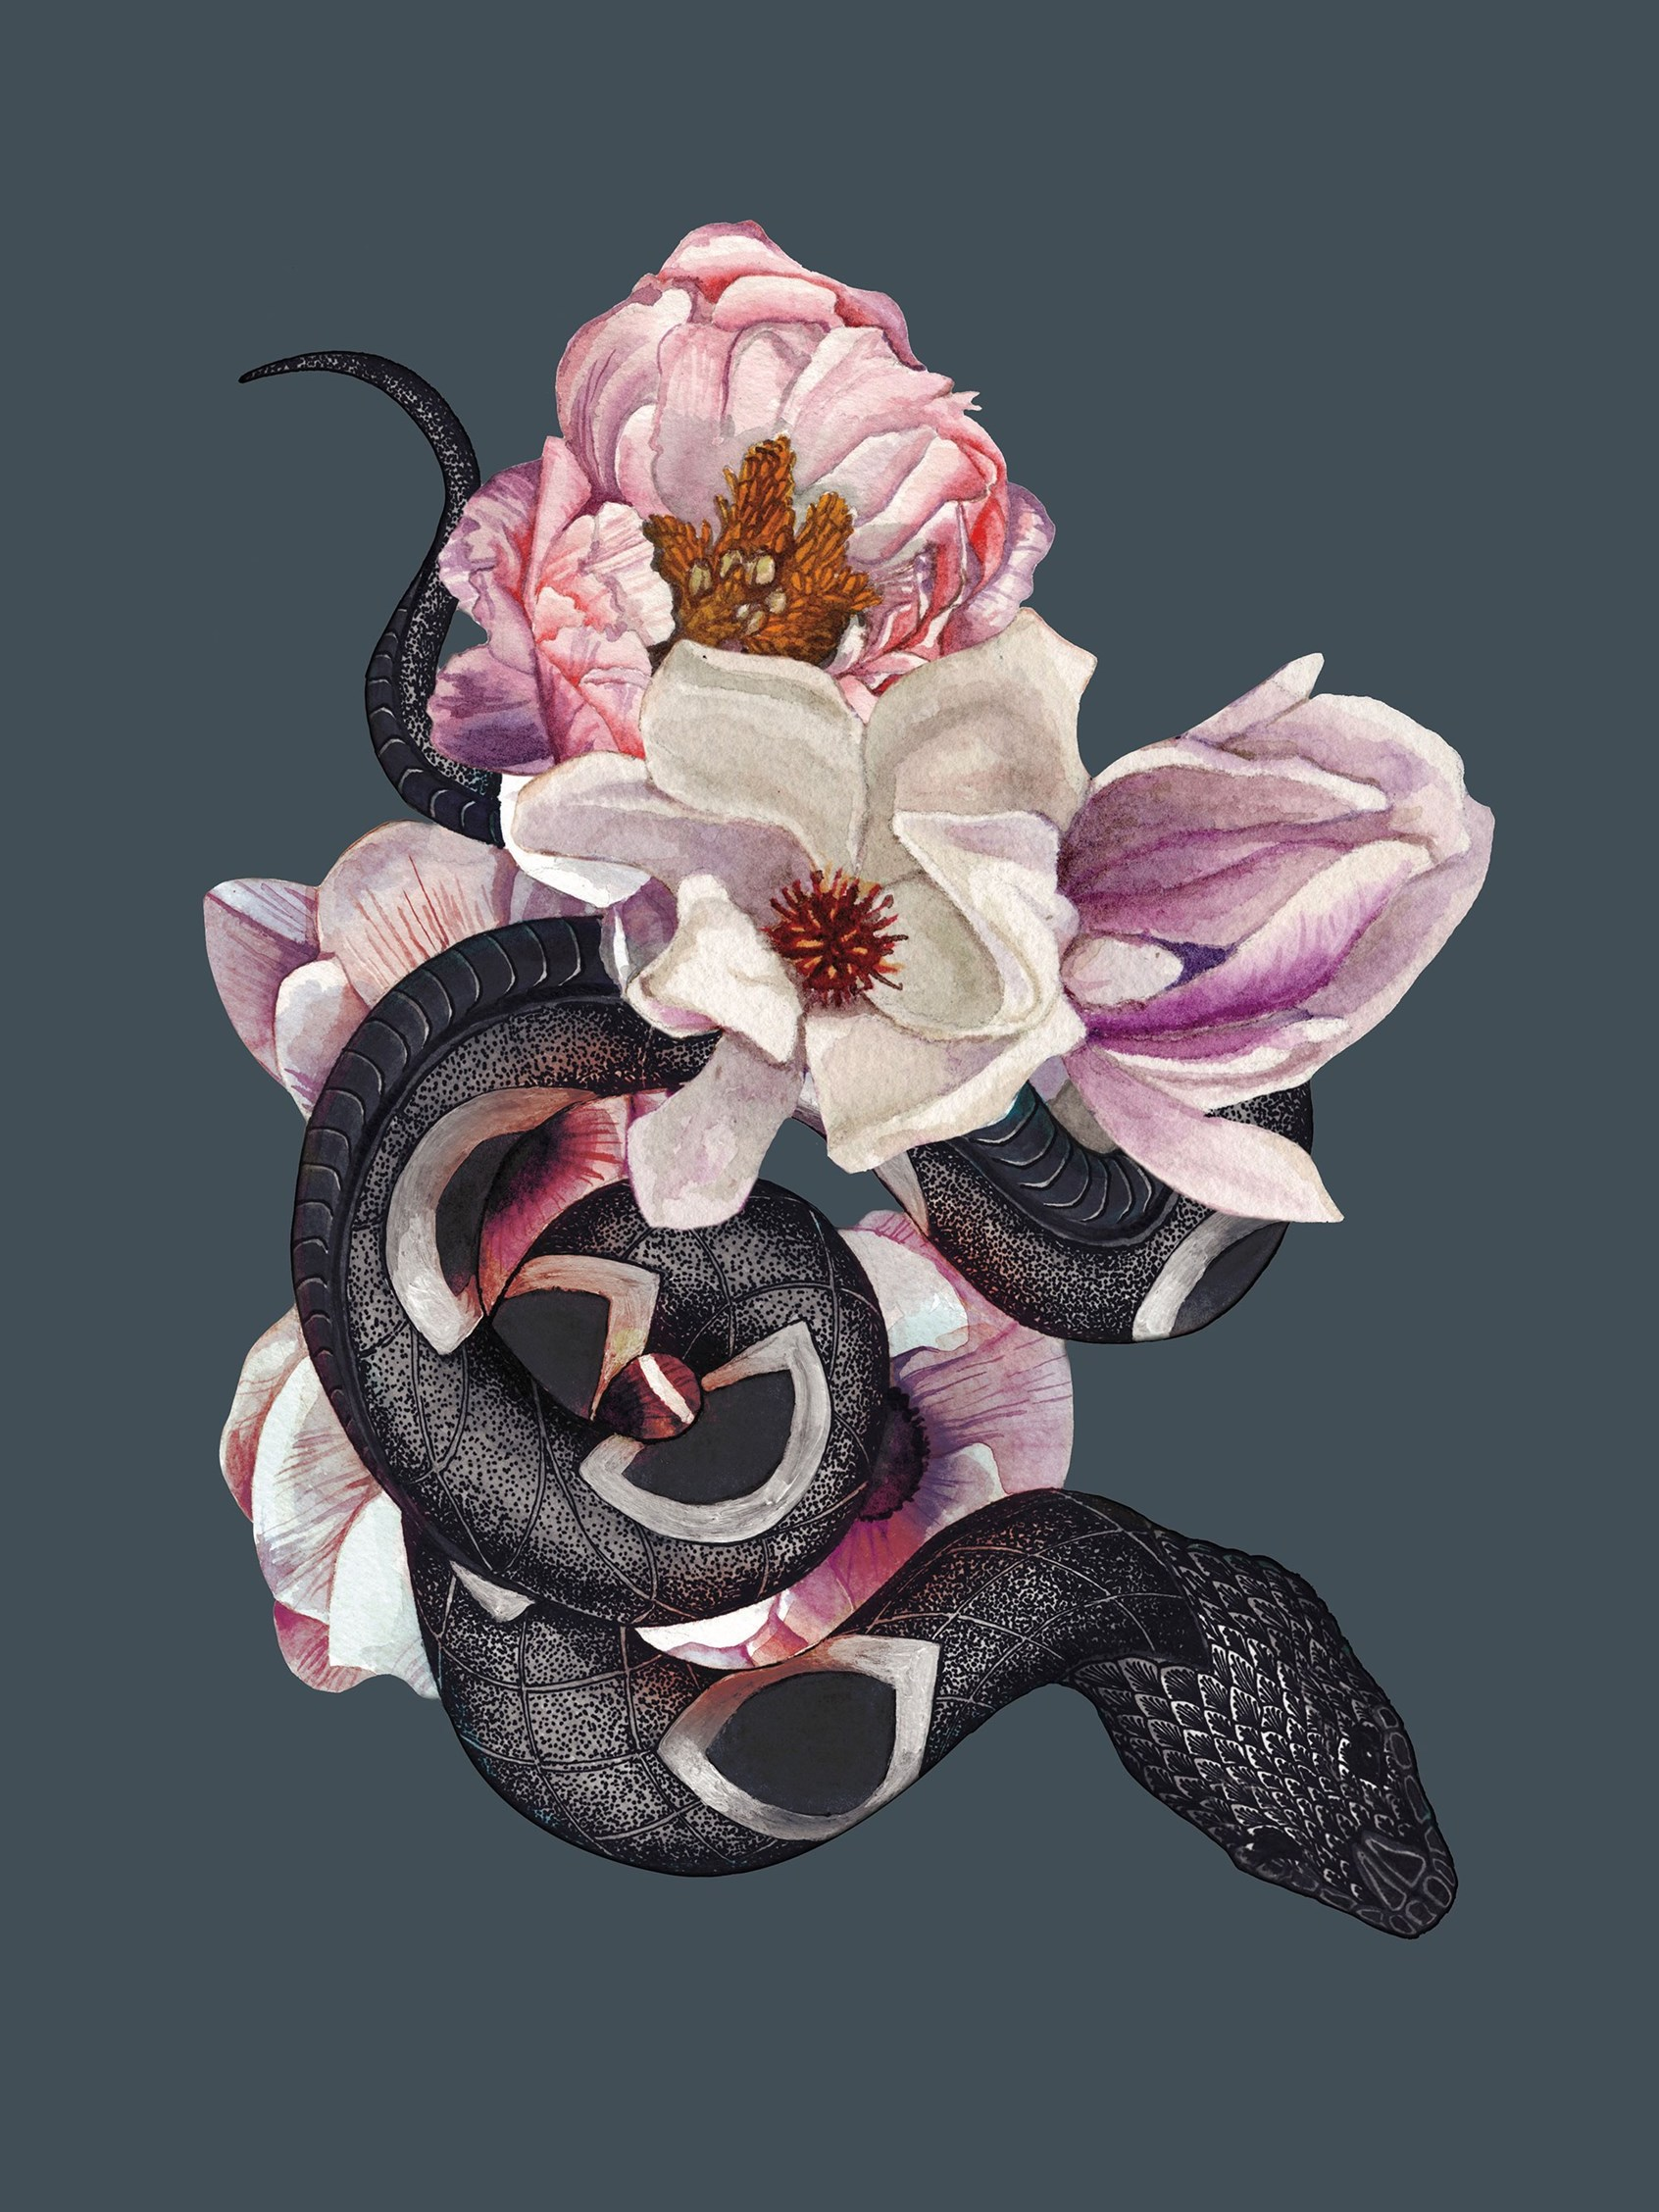 Illustration of a black snake curled around a bouquet of flowers.